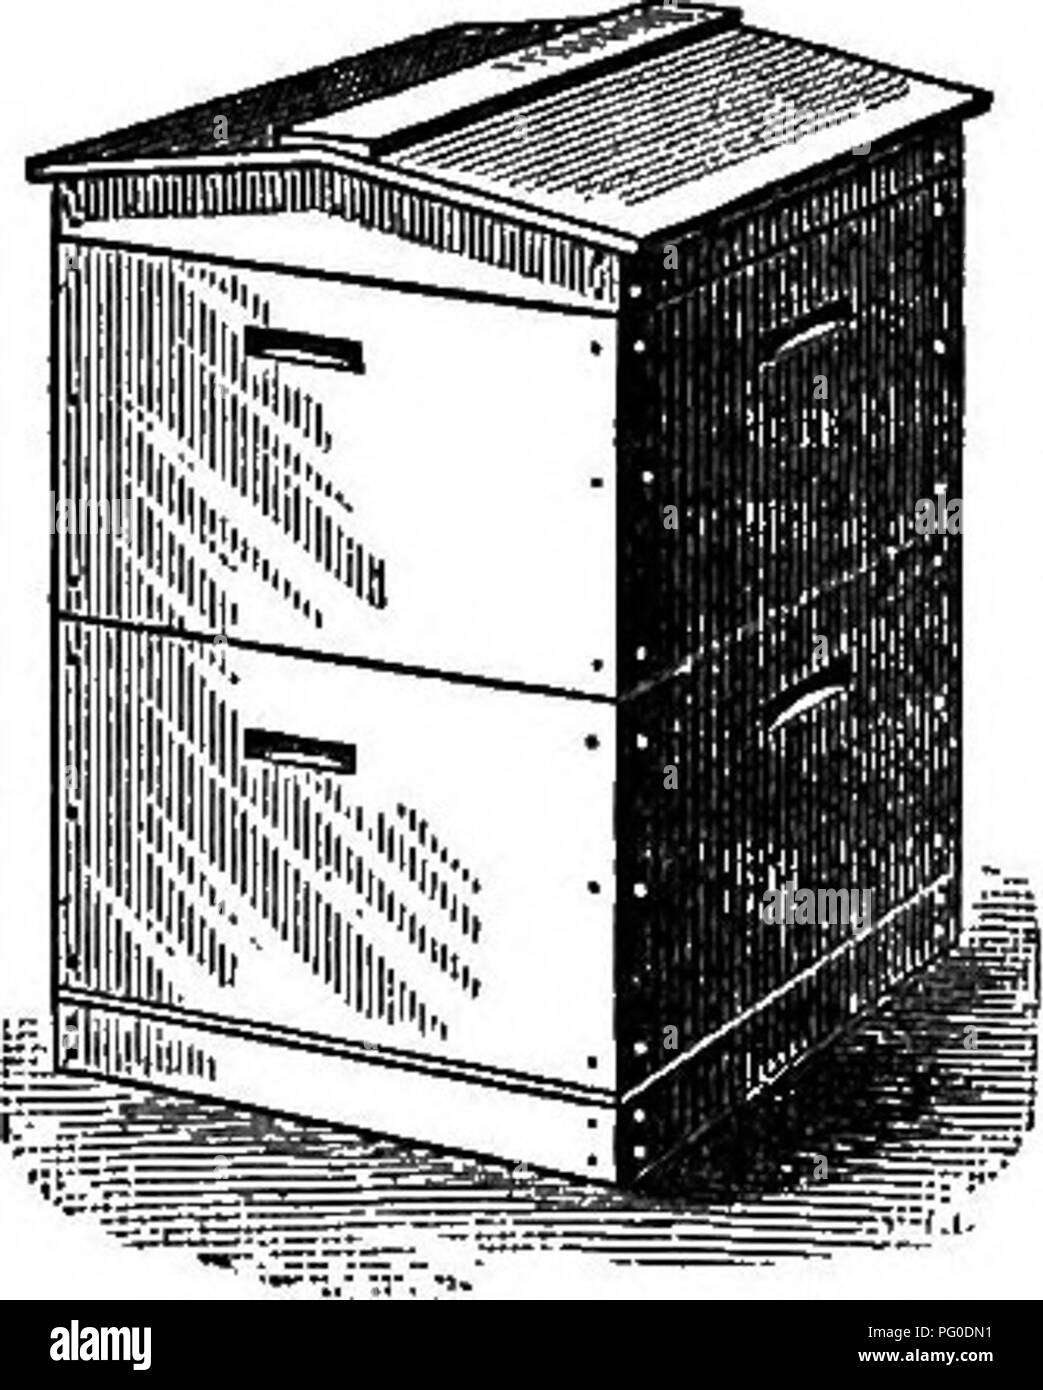 The national beekeeper's directory, containing a classified